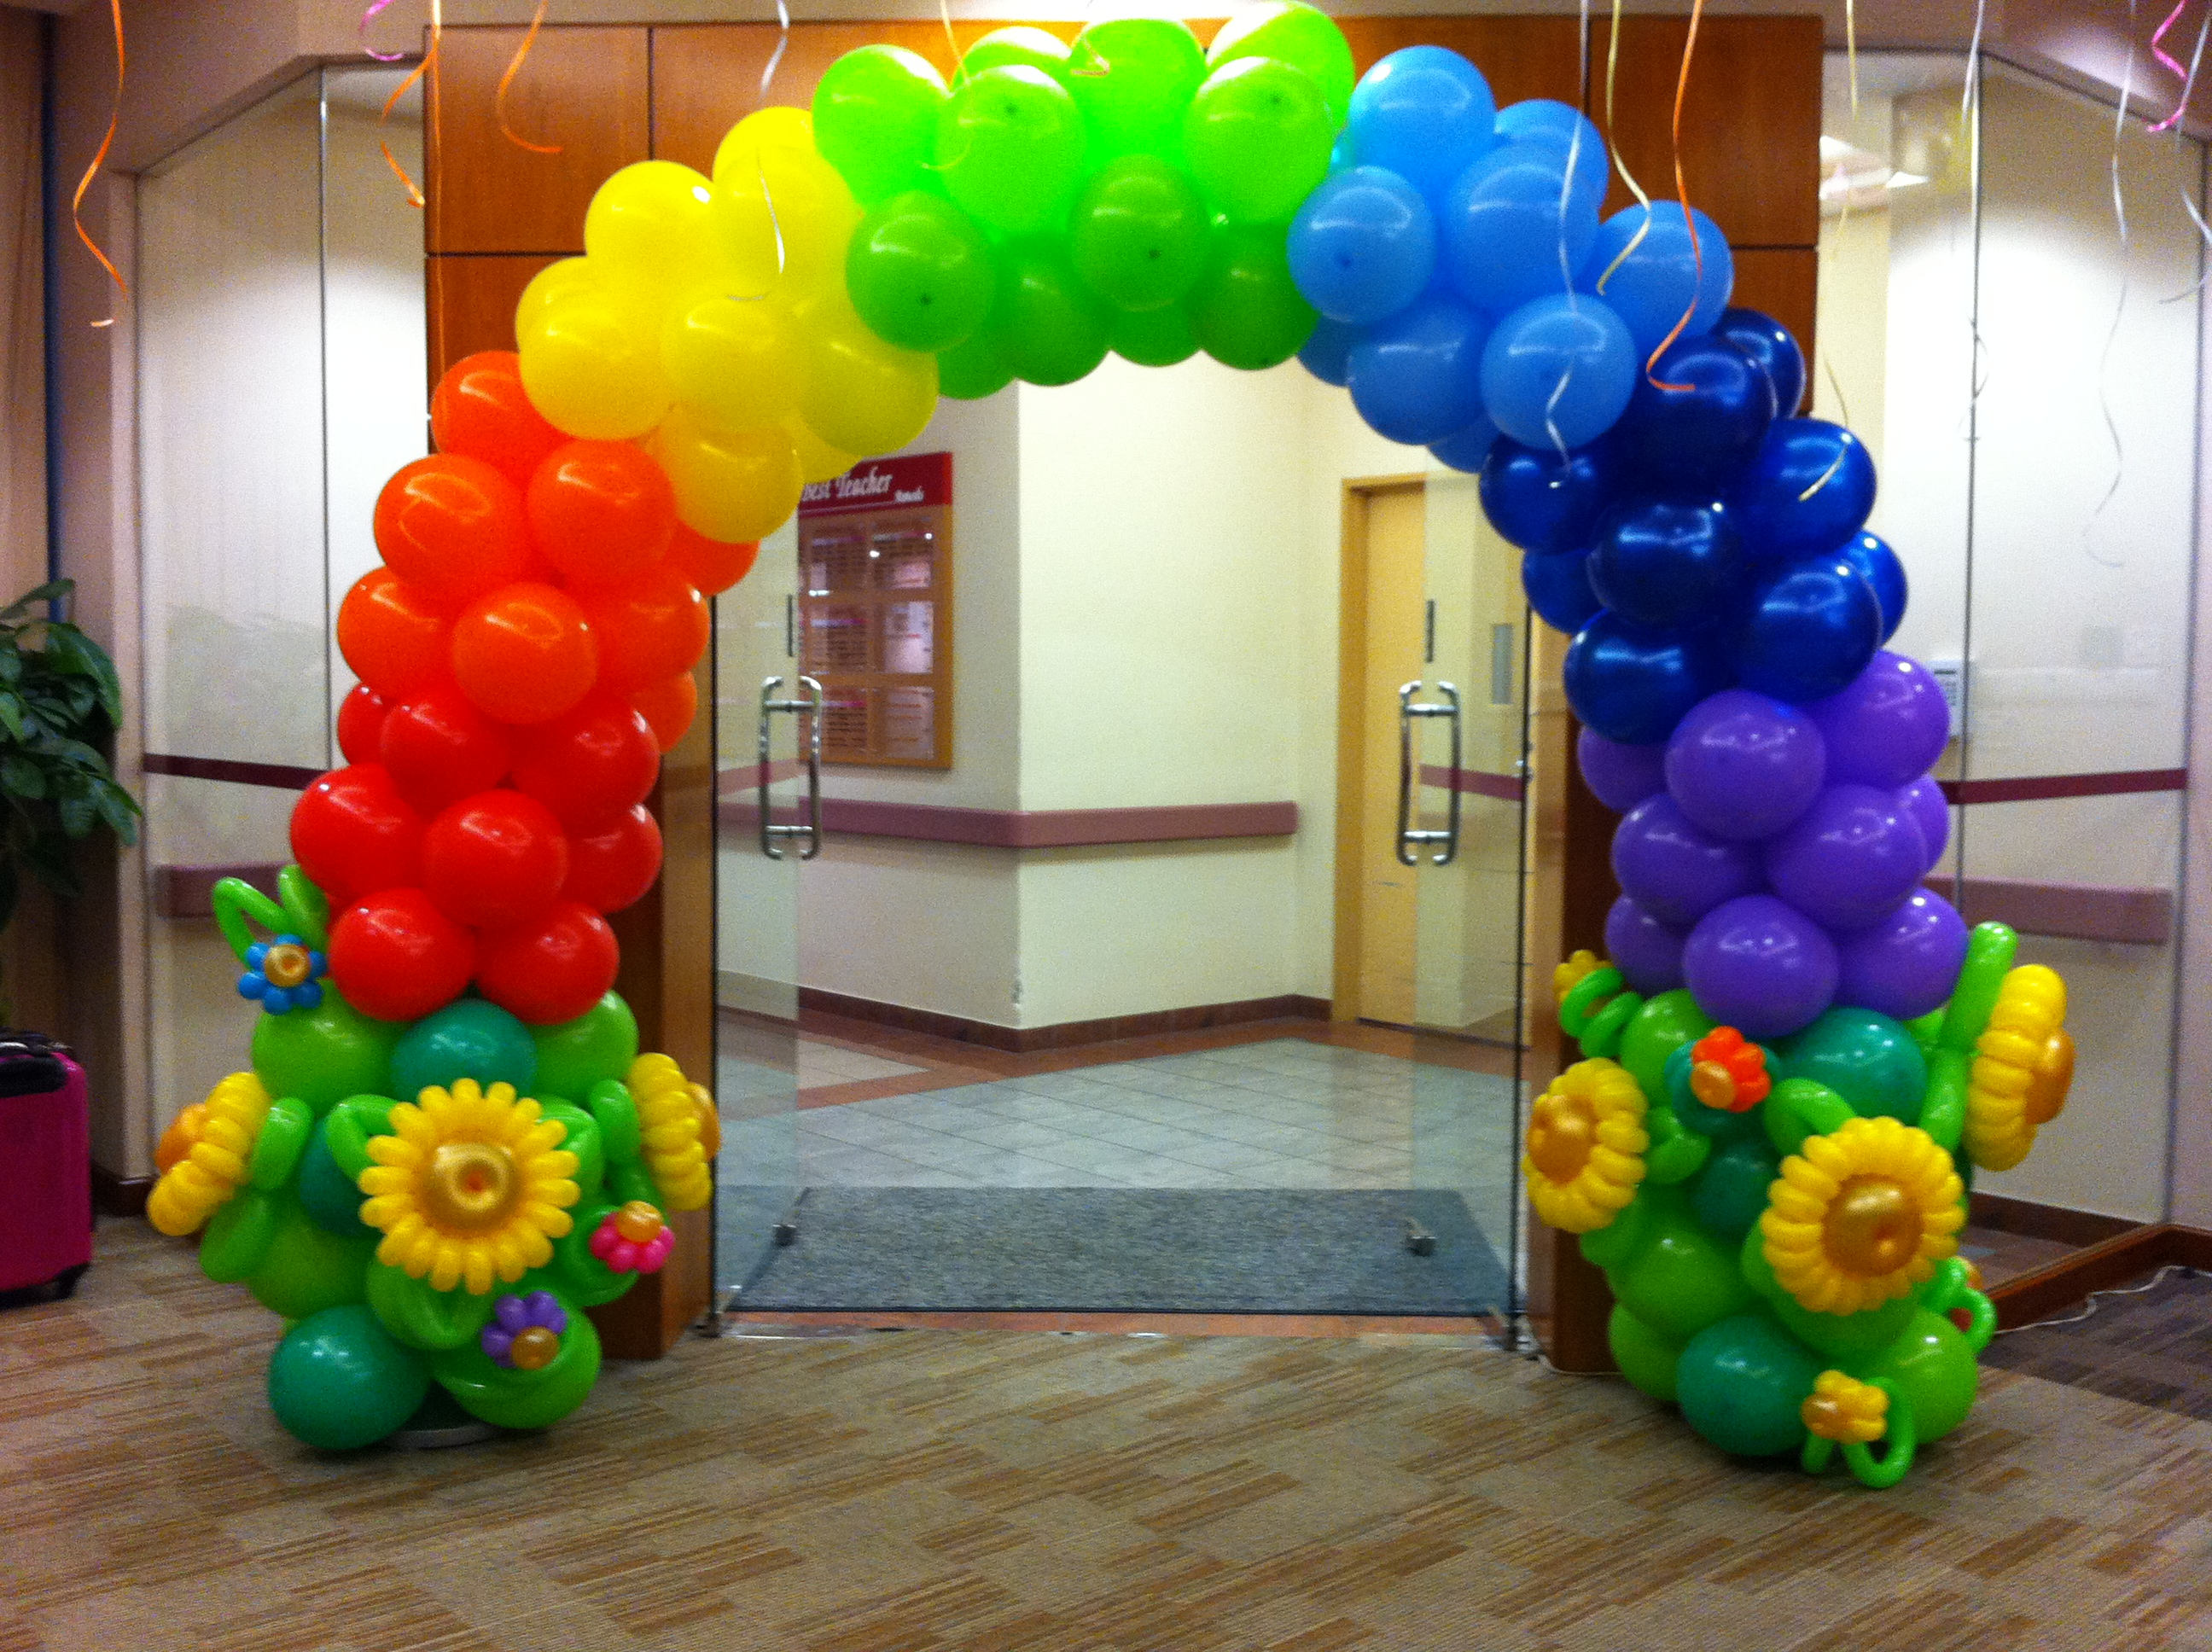 Singapore balloon rainbow arch that balloons for Balloon decoration arches